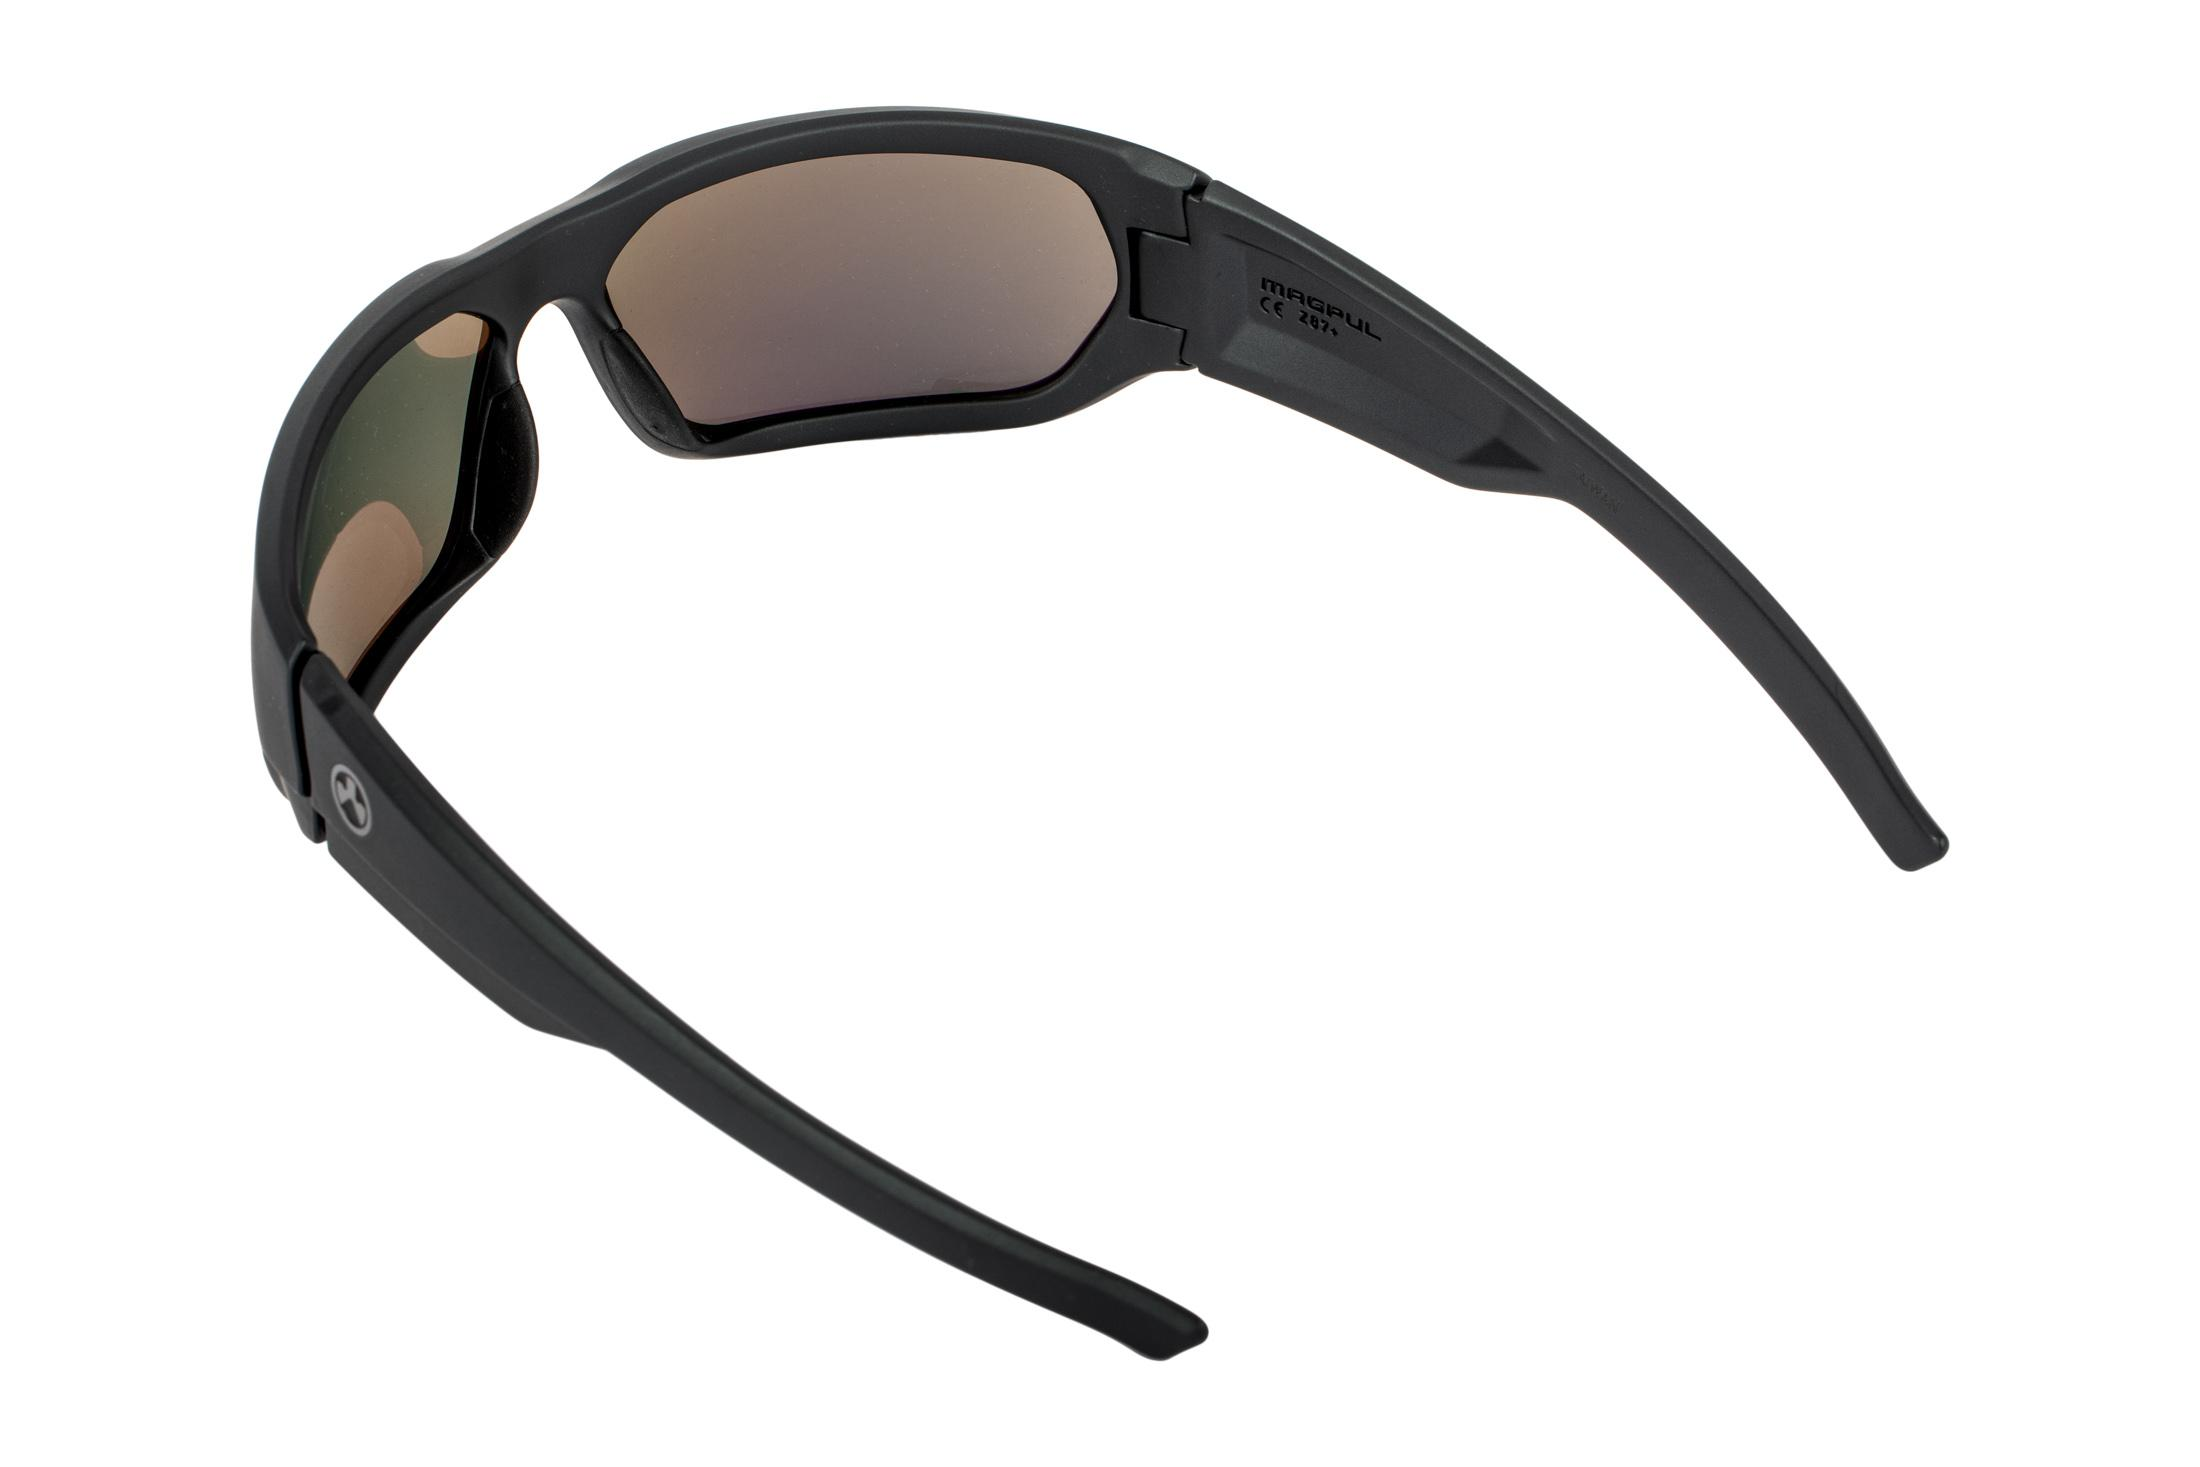 Magpul Industries Radius safety glasses feature a polarized gray lens